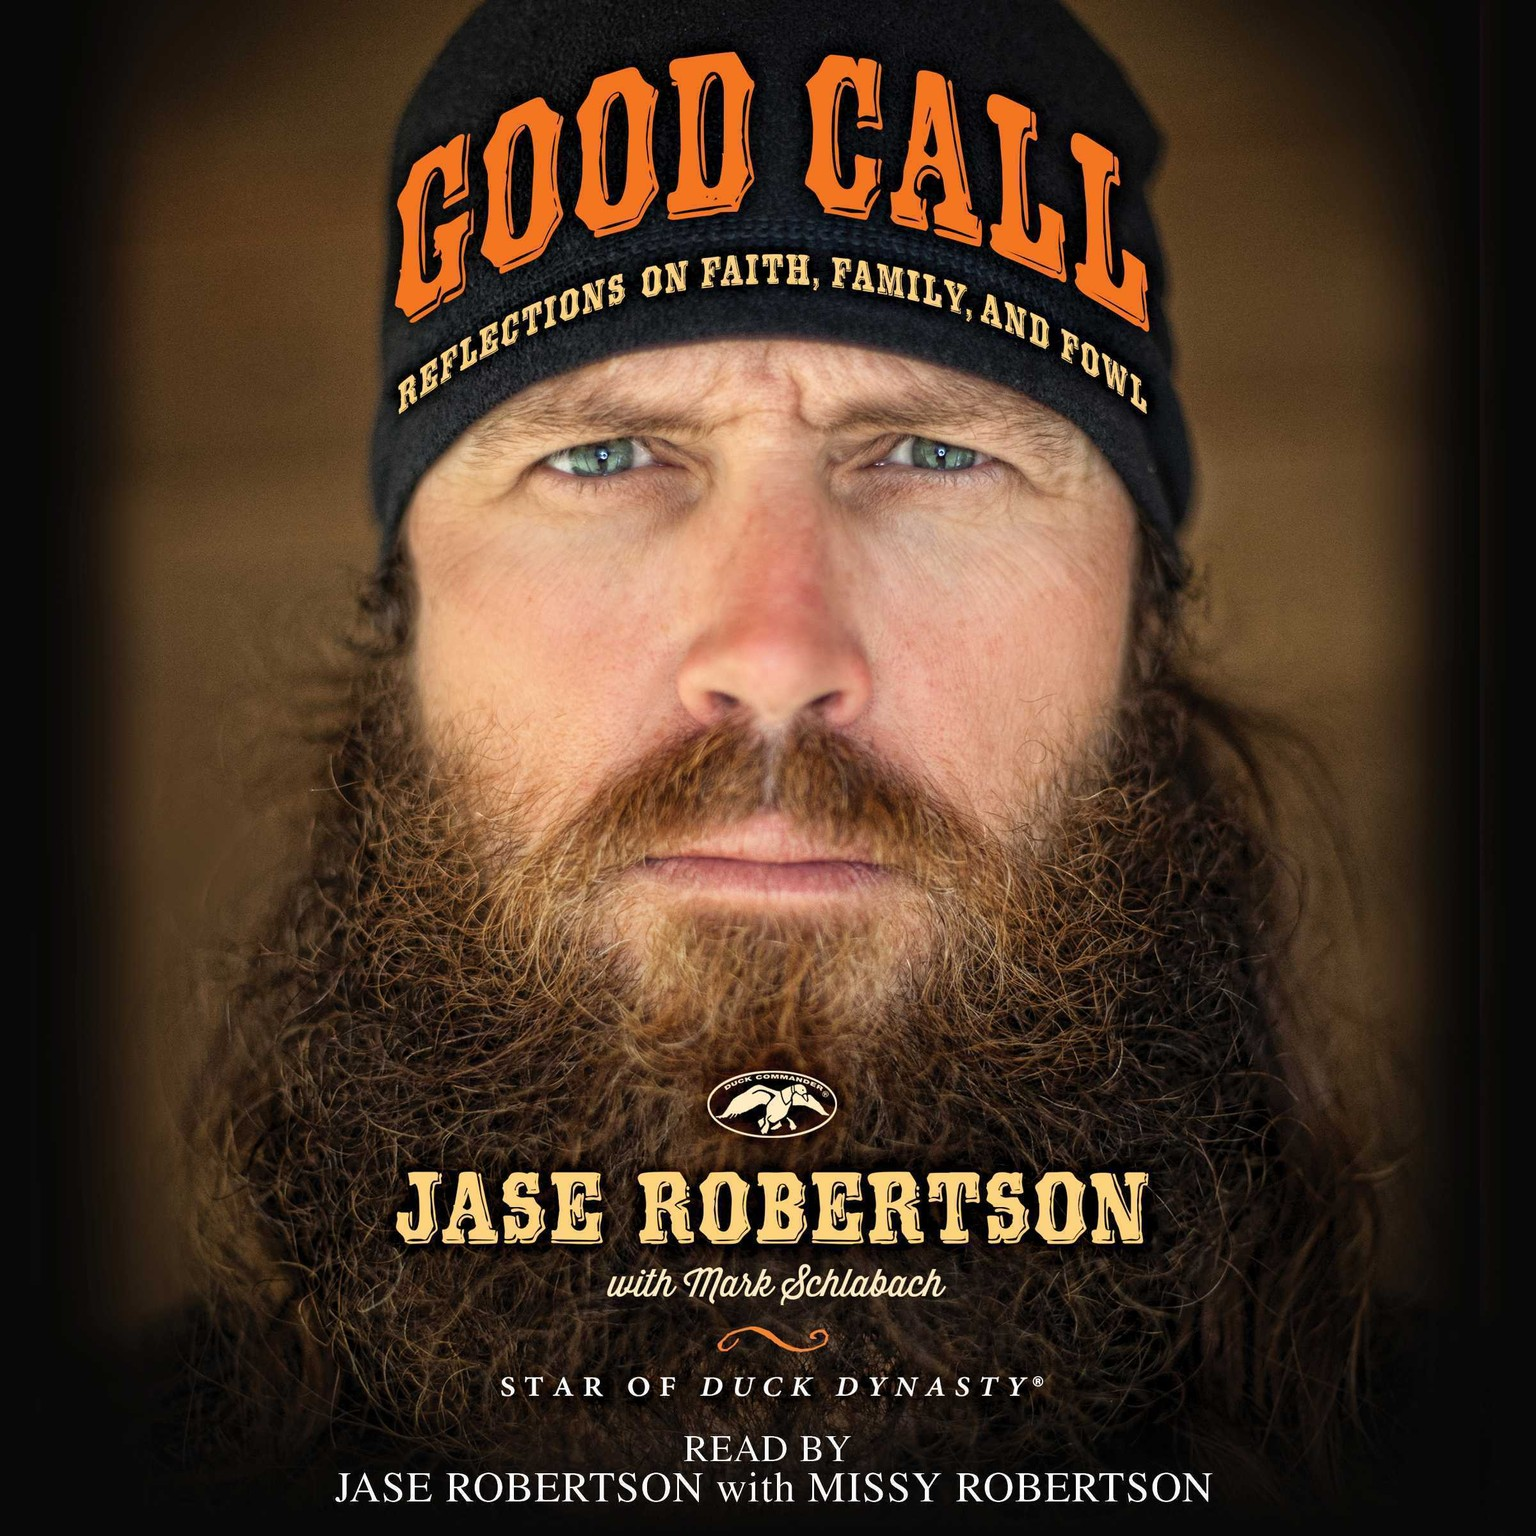 Printable Good Call: Reflections on Faith, Family, and Fowl Audiobook Cover Art